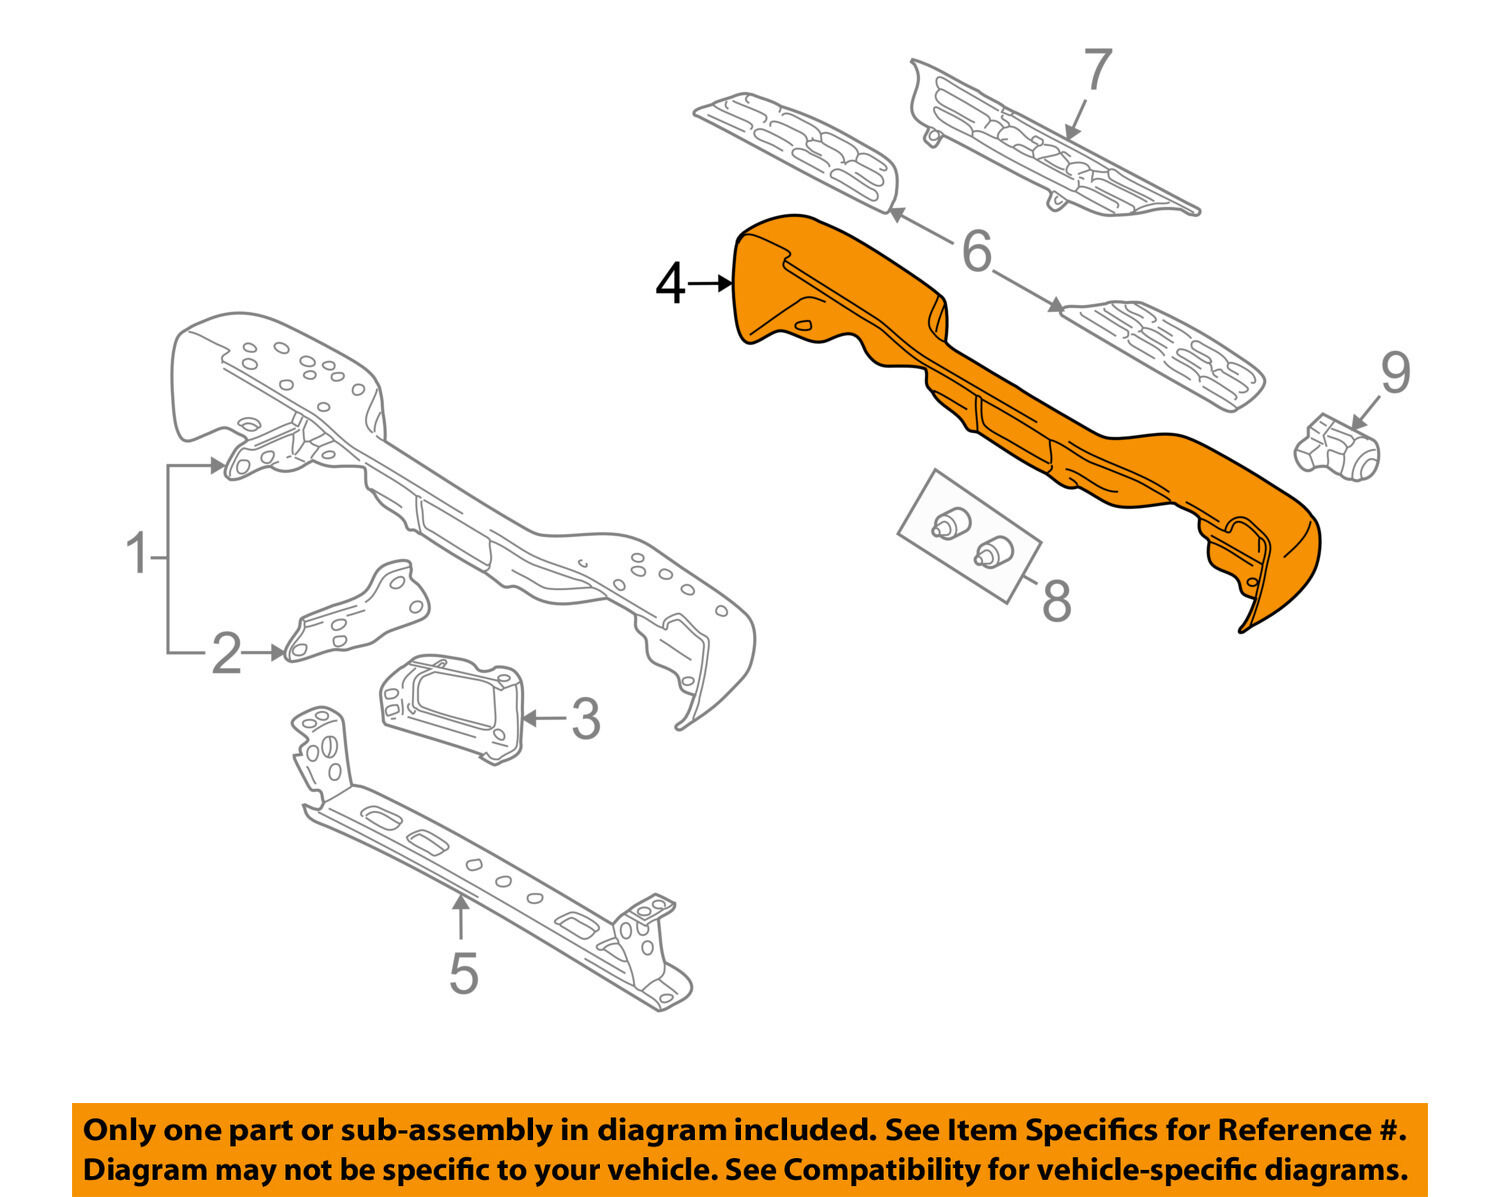 Diagram 2007 chevy avalanche parts what is gantt chart in project avalanche 2002 chevy avalanche parts catalog old chevy photos s l1600 2002 chevy avalanche parts catalog diagram 2007 chevy avalanche parts diagram 2007 pooptronica Gallery